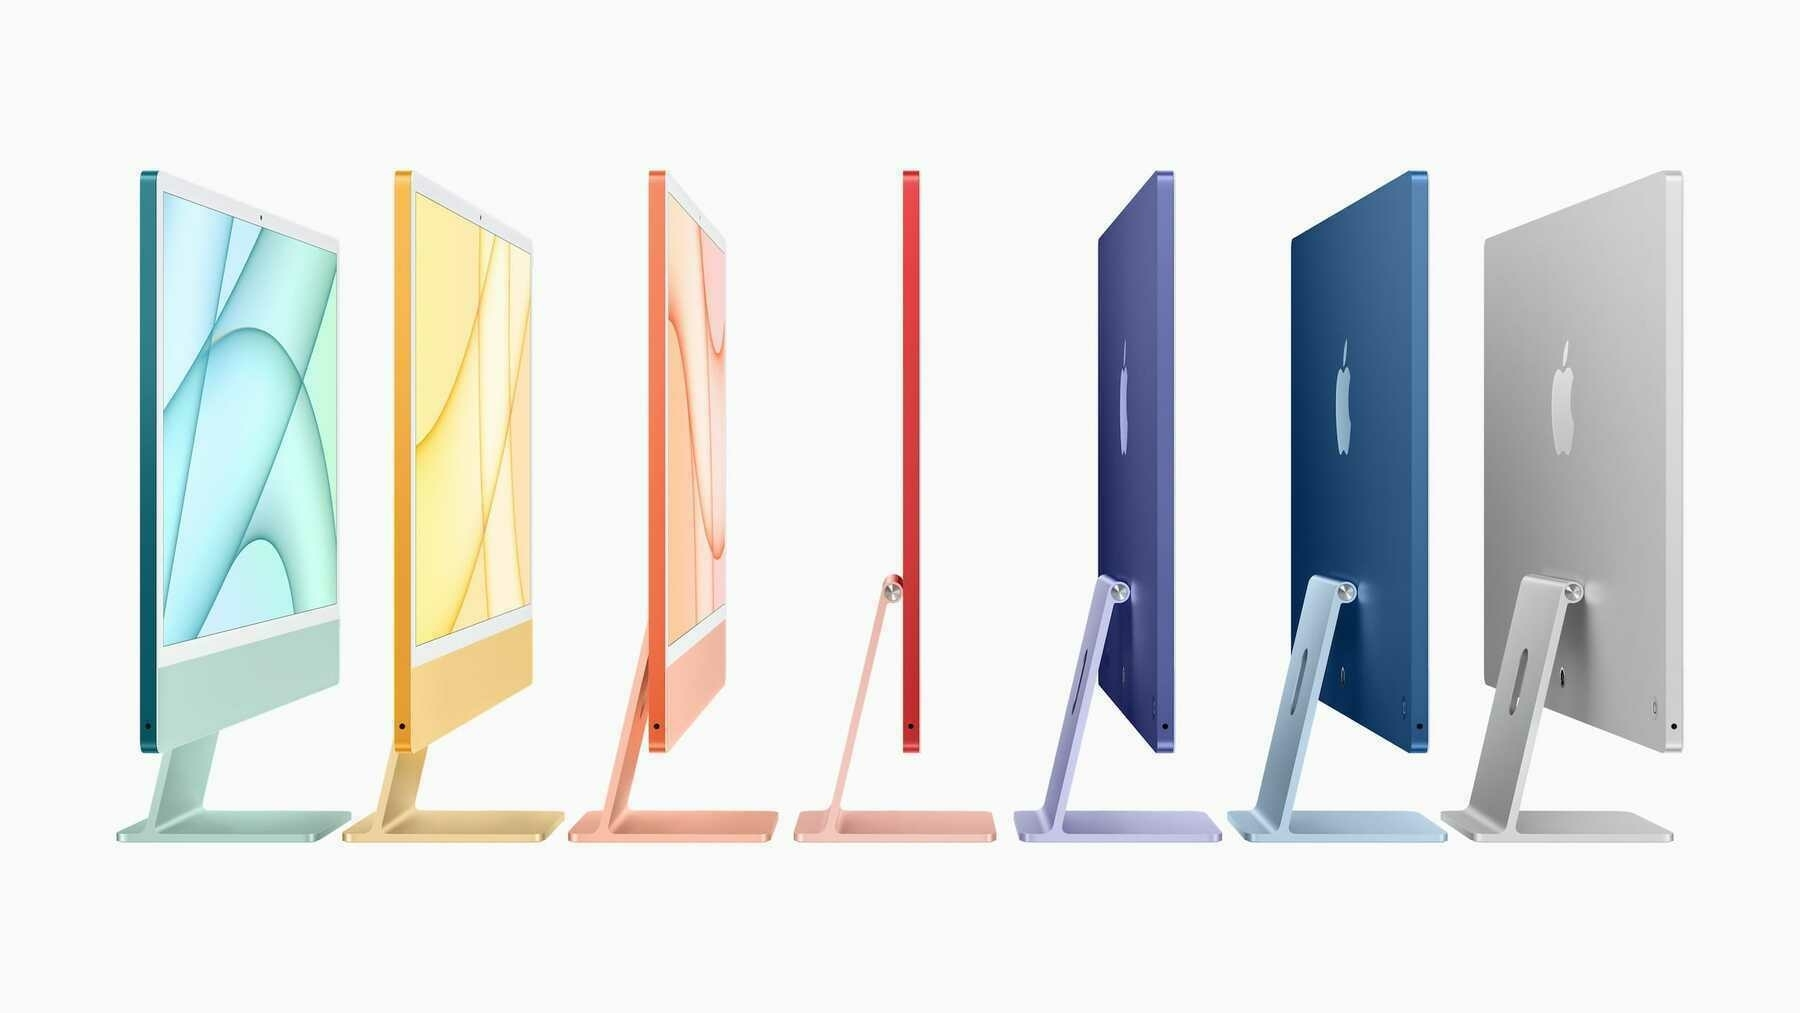 The new iMac in seven snazzy colors.